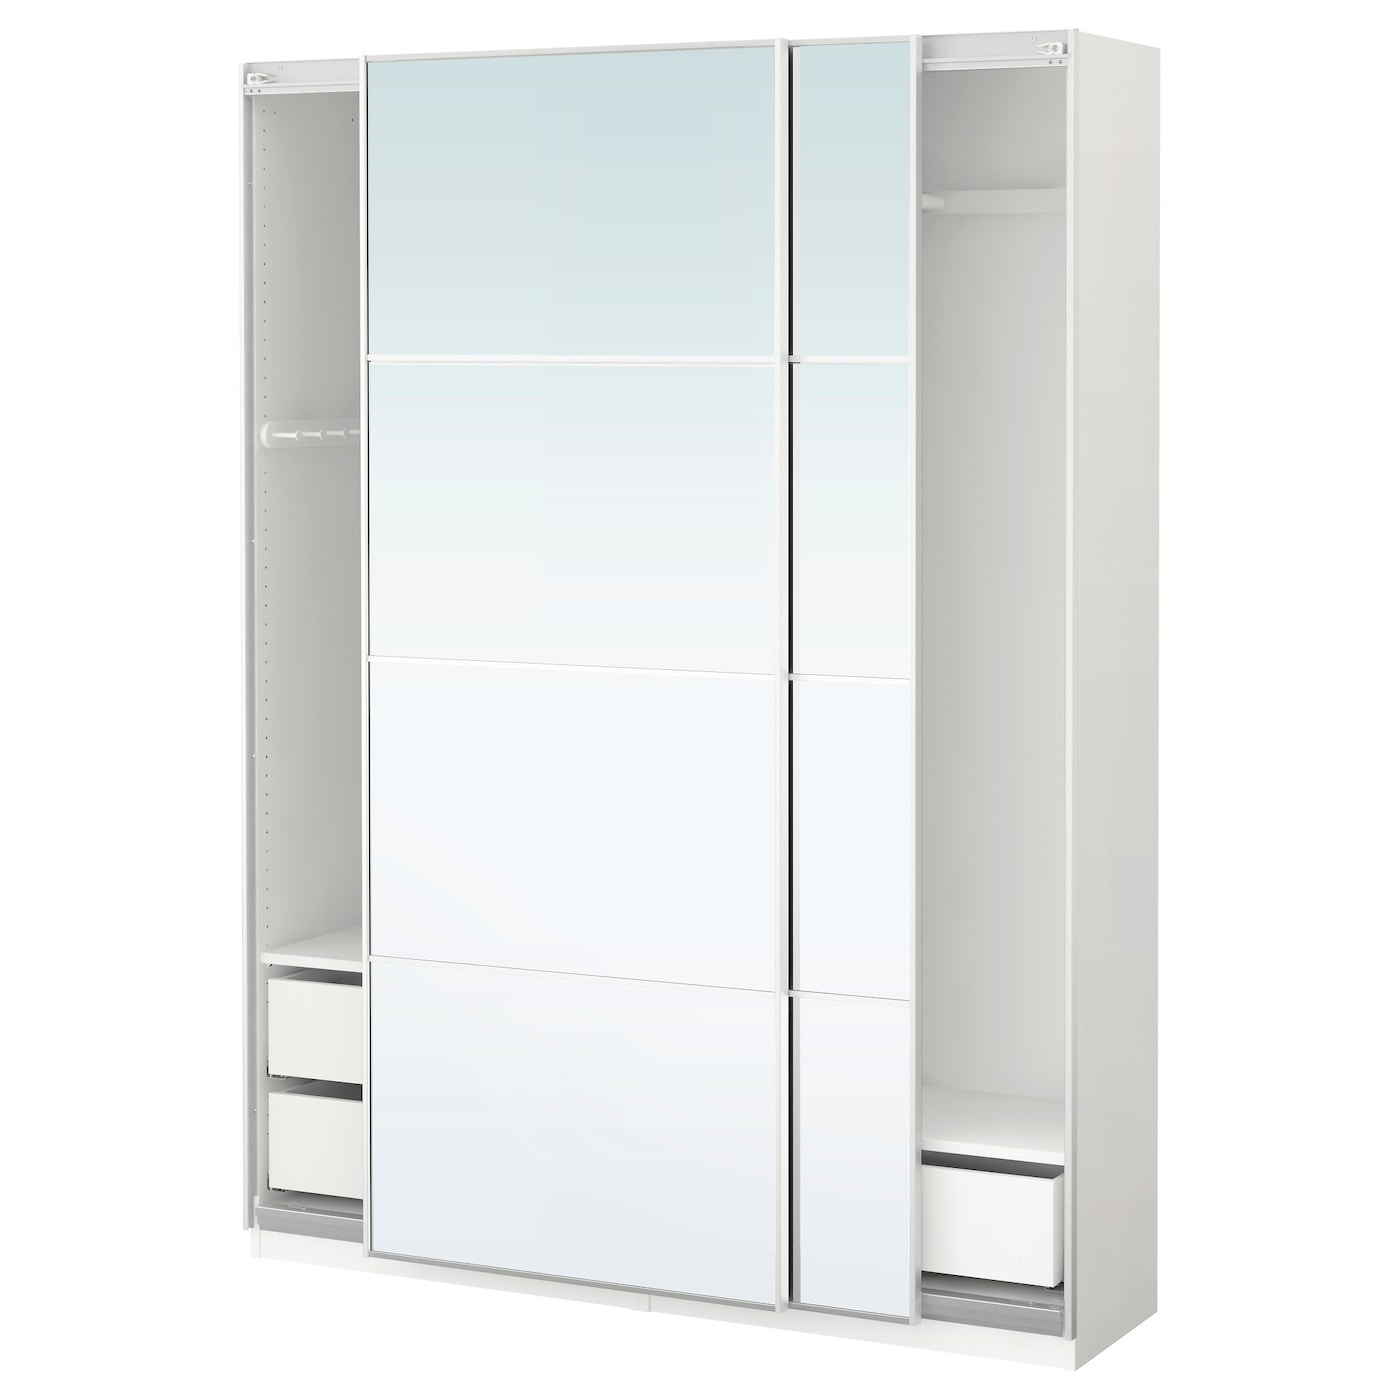 pax wardrobe white auli mirror glass 150x44x201 cm ikea. Black Bedroom Furniture Sets. Home Design Ideas